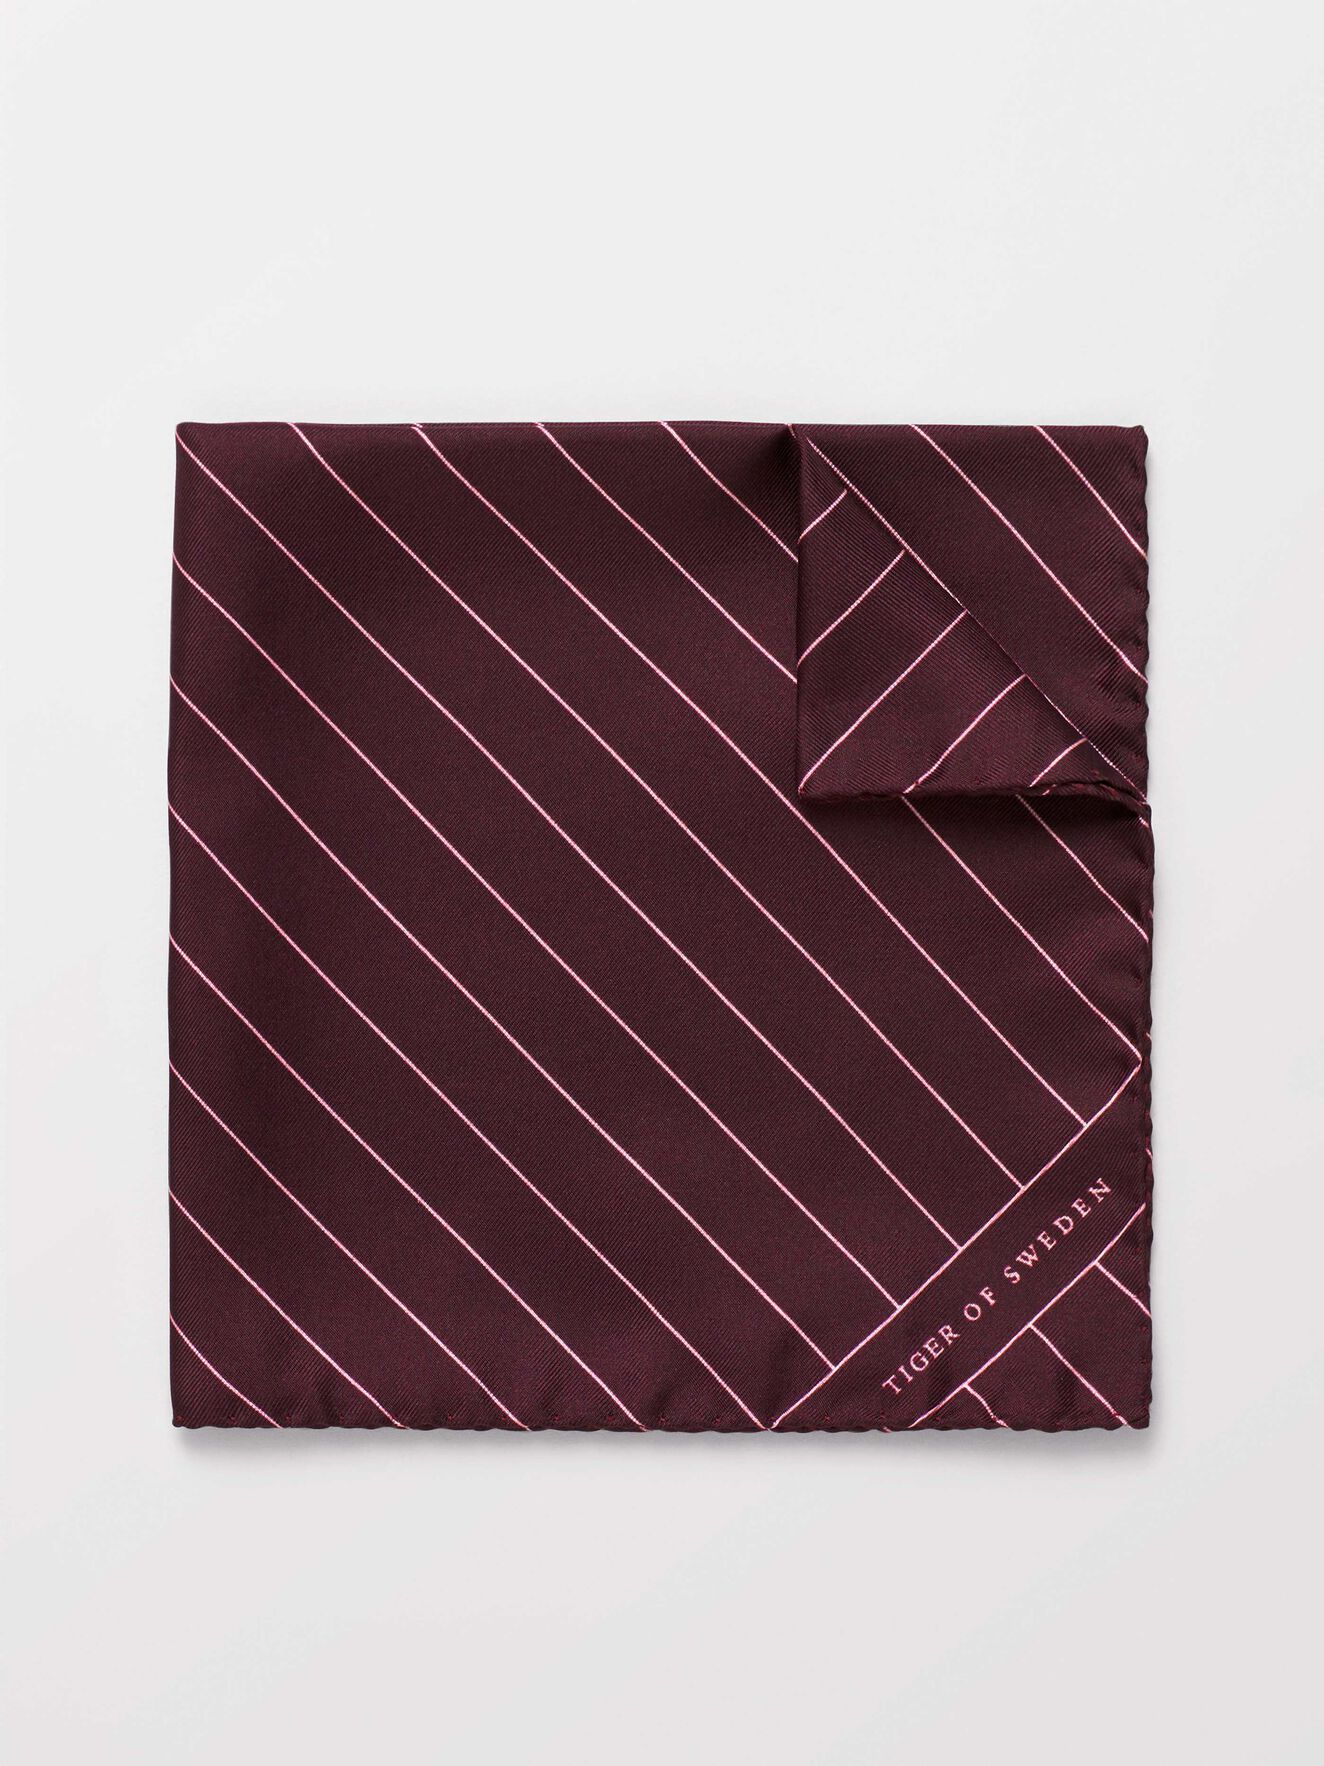 Pax Handkerchief in Noon Plum from Tiger of Sweden